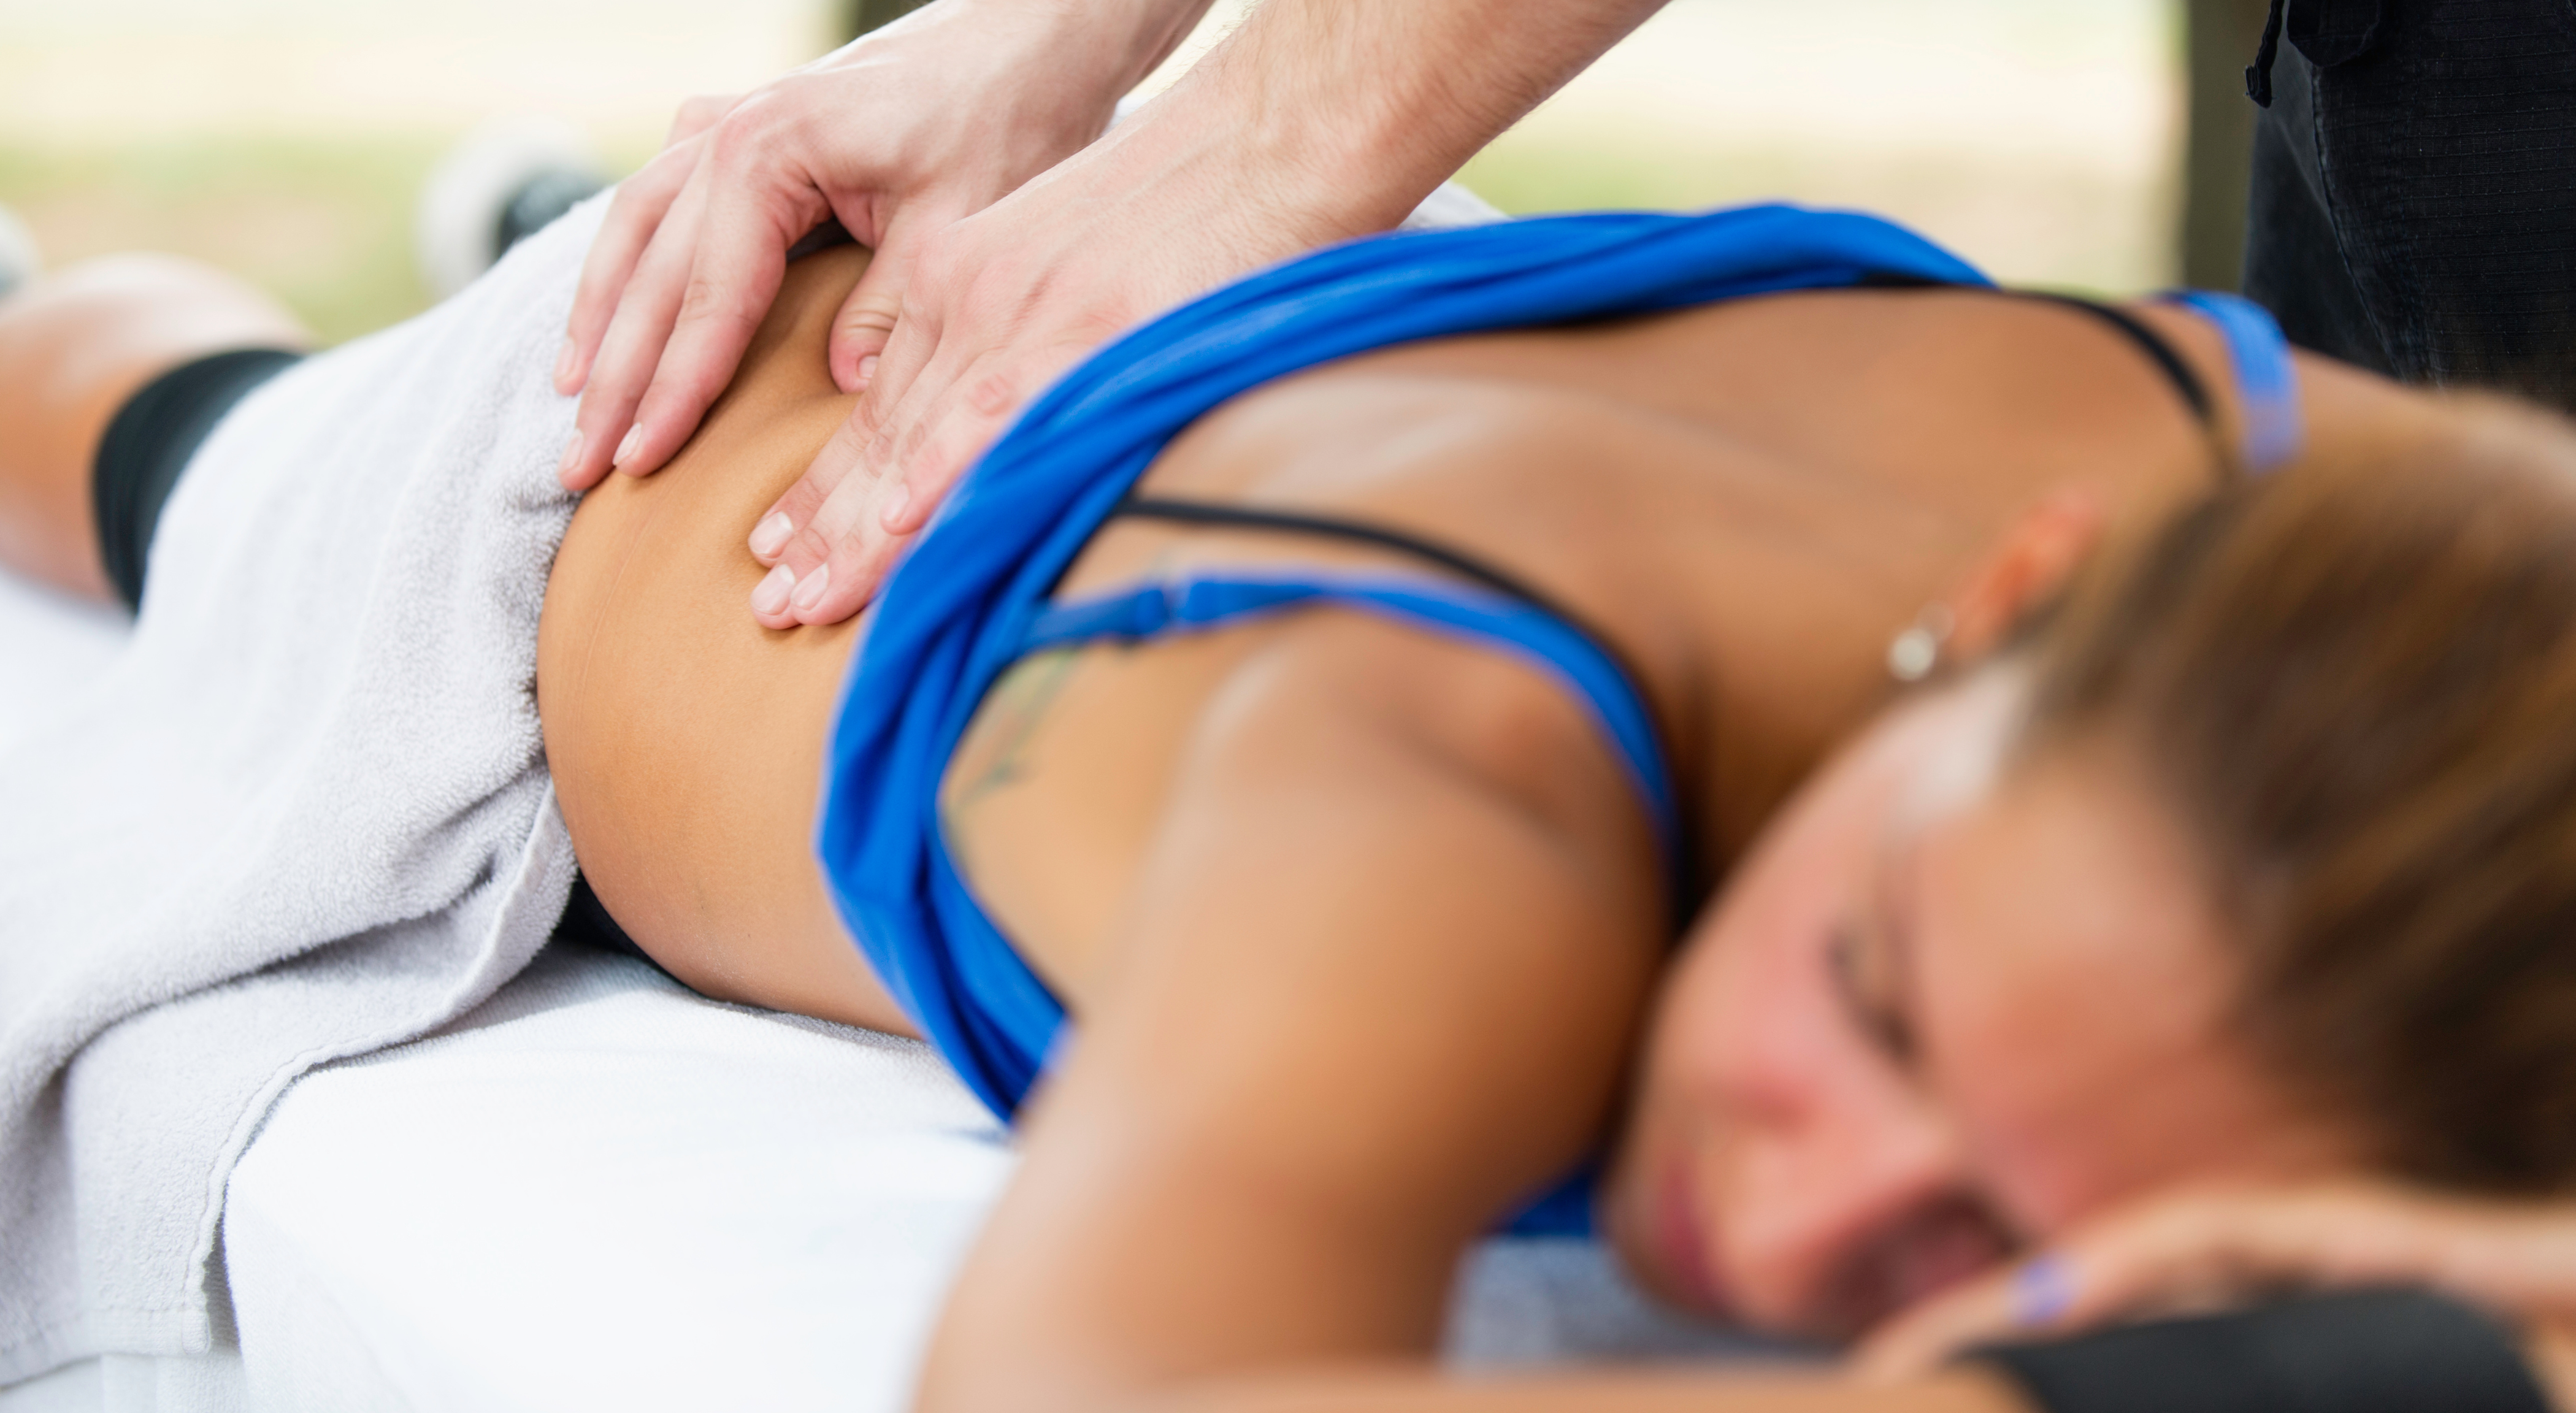 How Does Massage Help You?